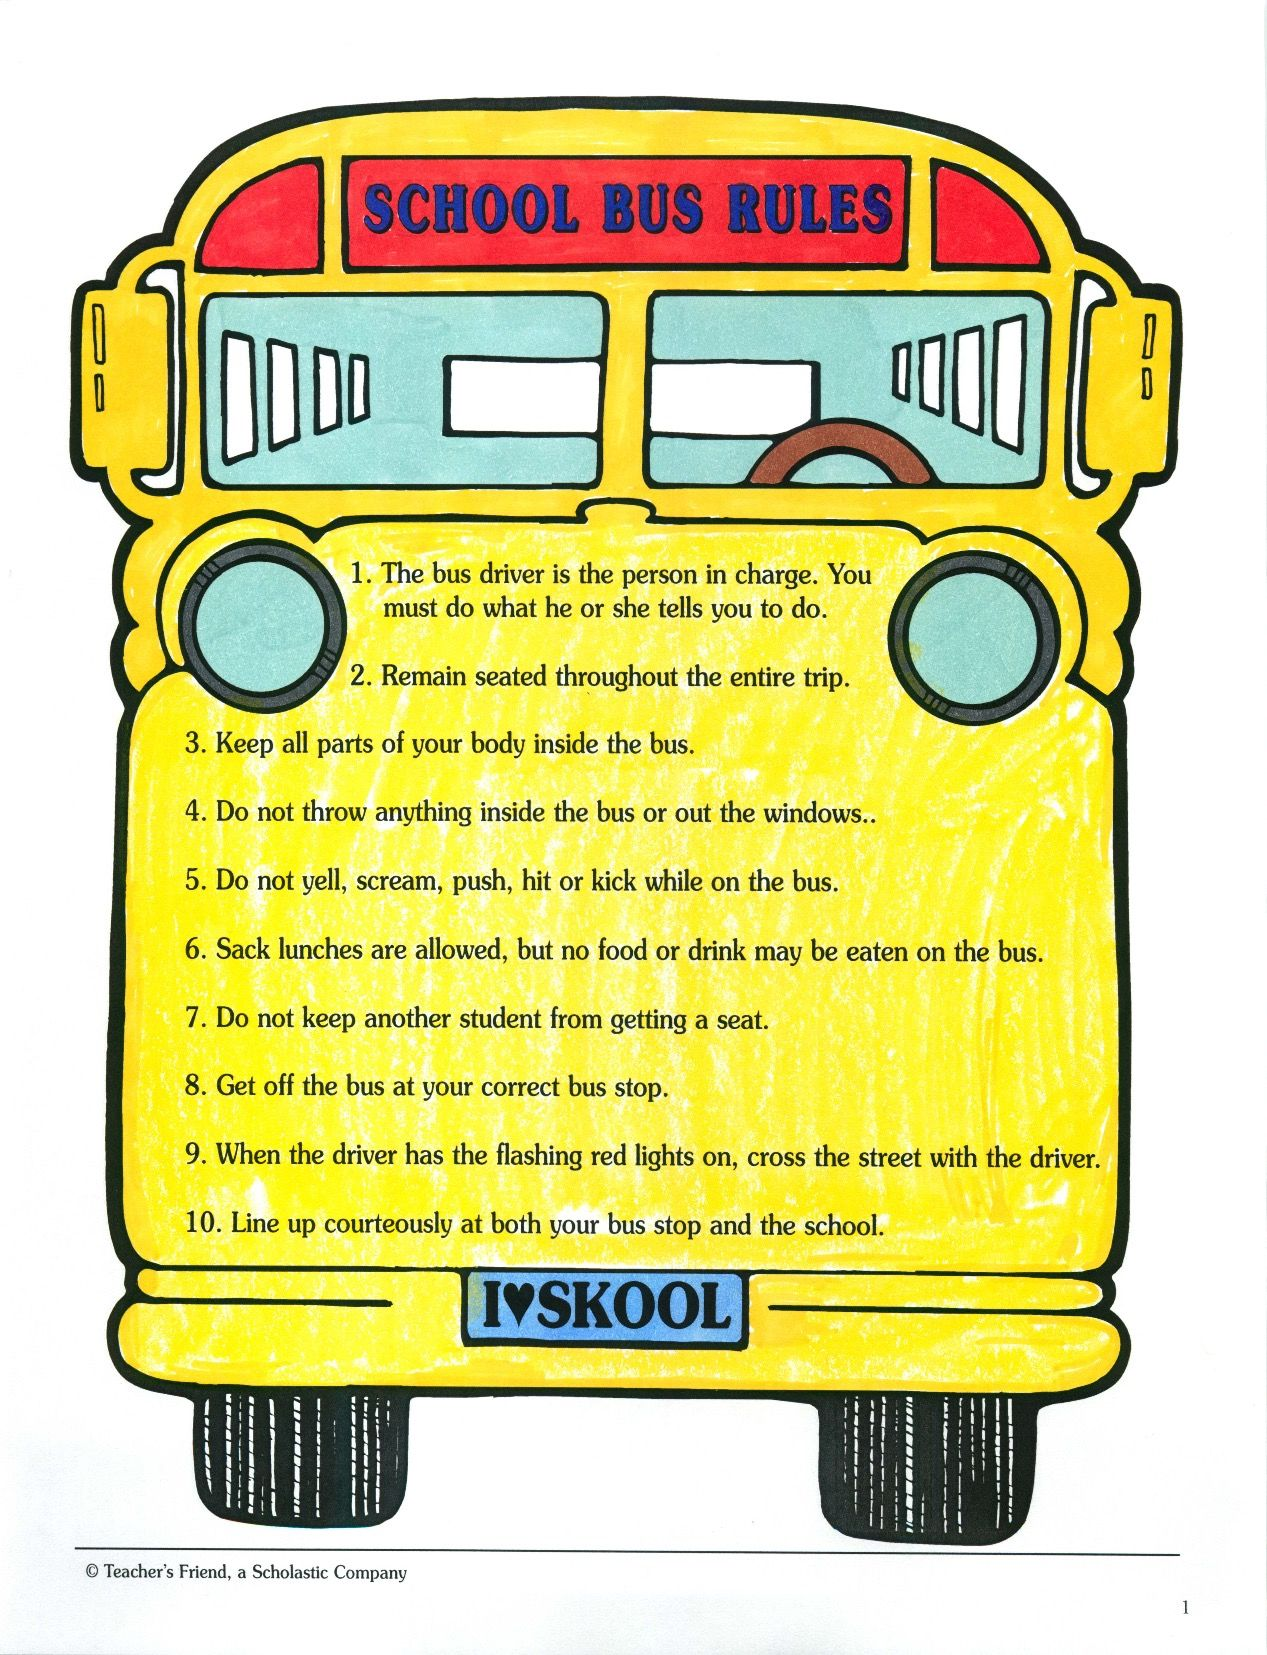 Start The Year Off By Discussing 10 Key Safety Rules For